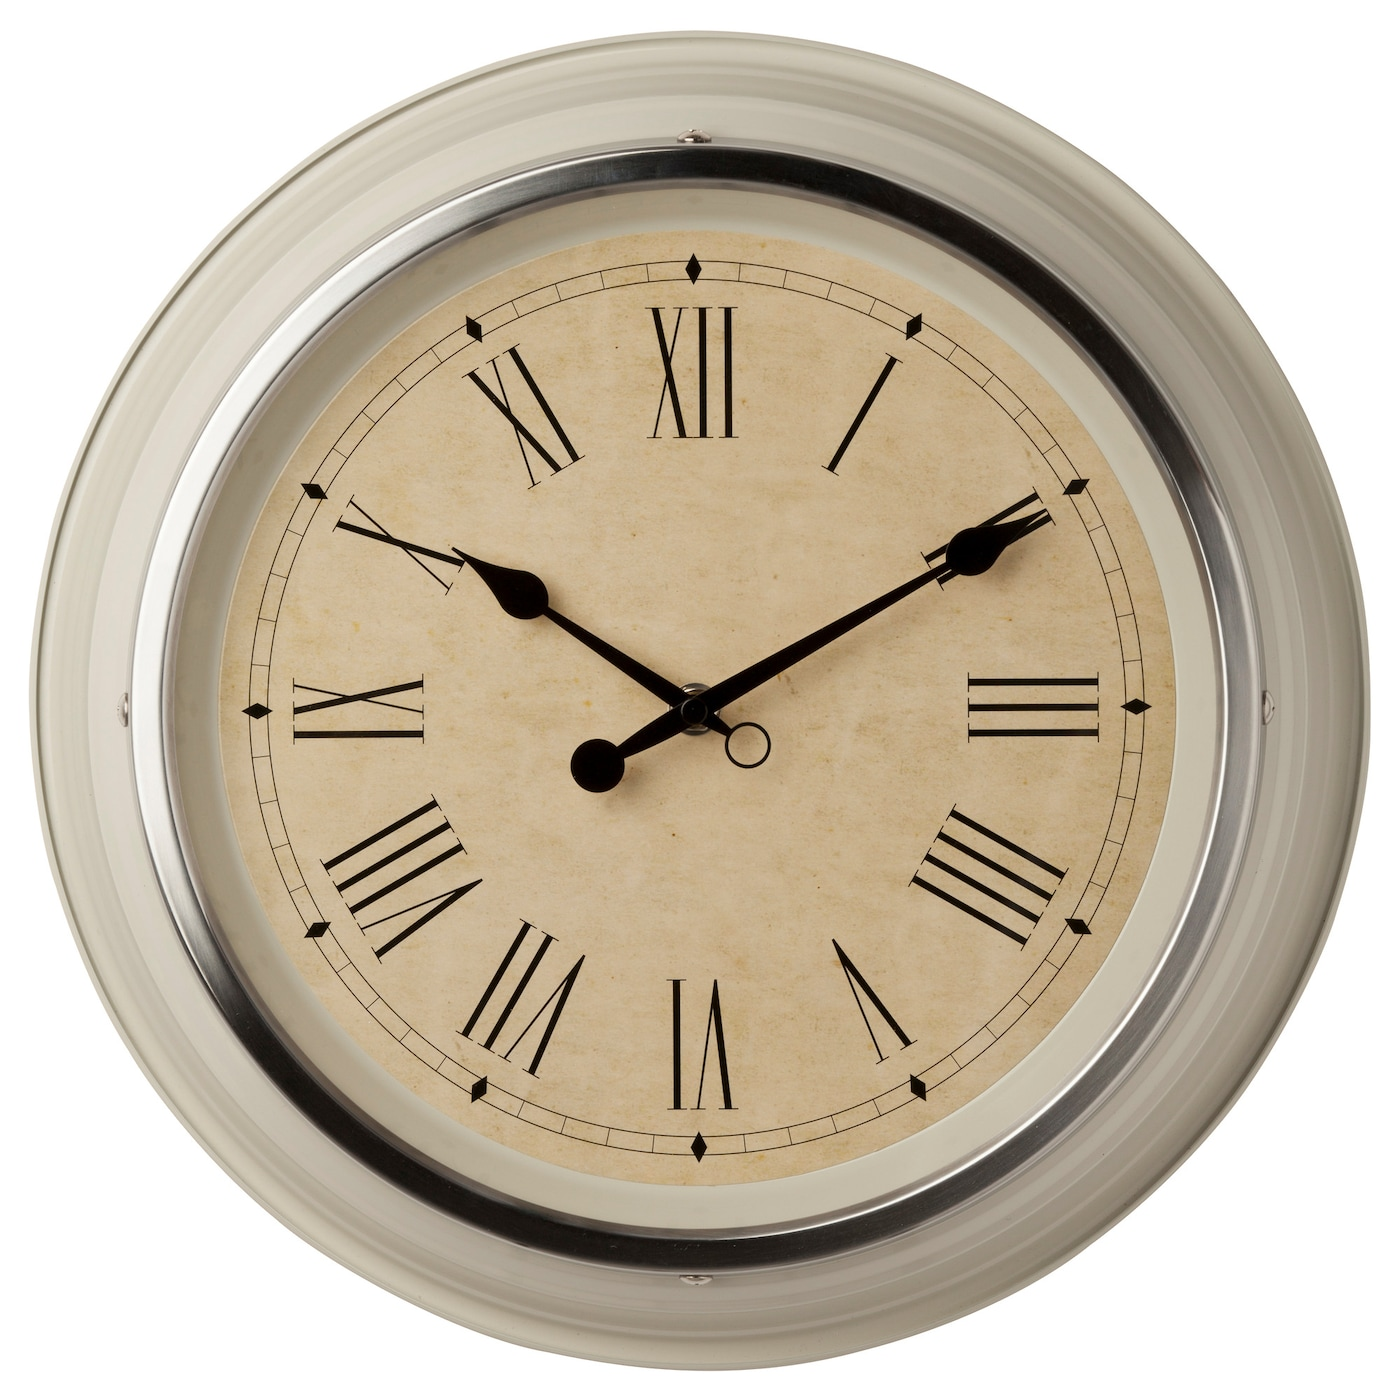 IKEA SKOVEL wall clock Highly accurate at keeping time as it is fitted with a quartz movement.